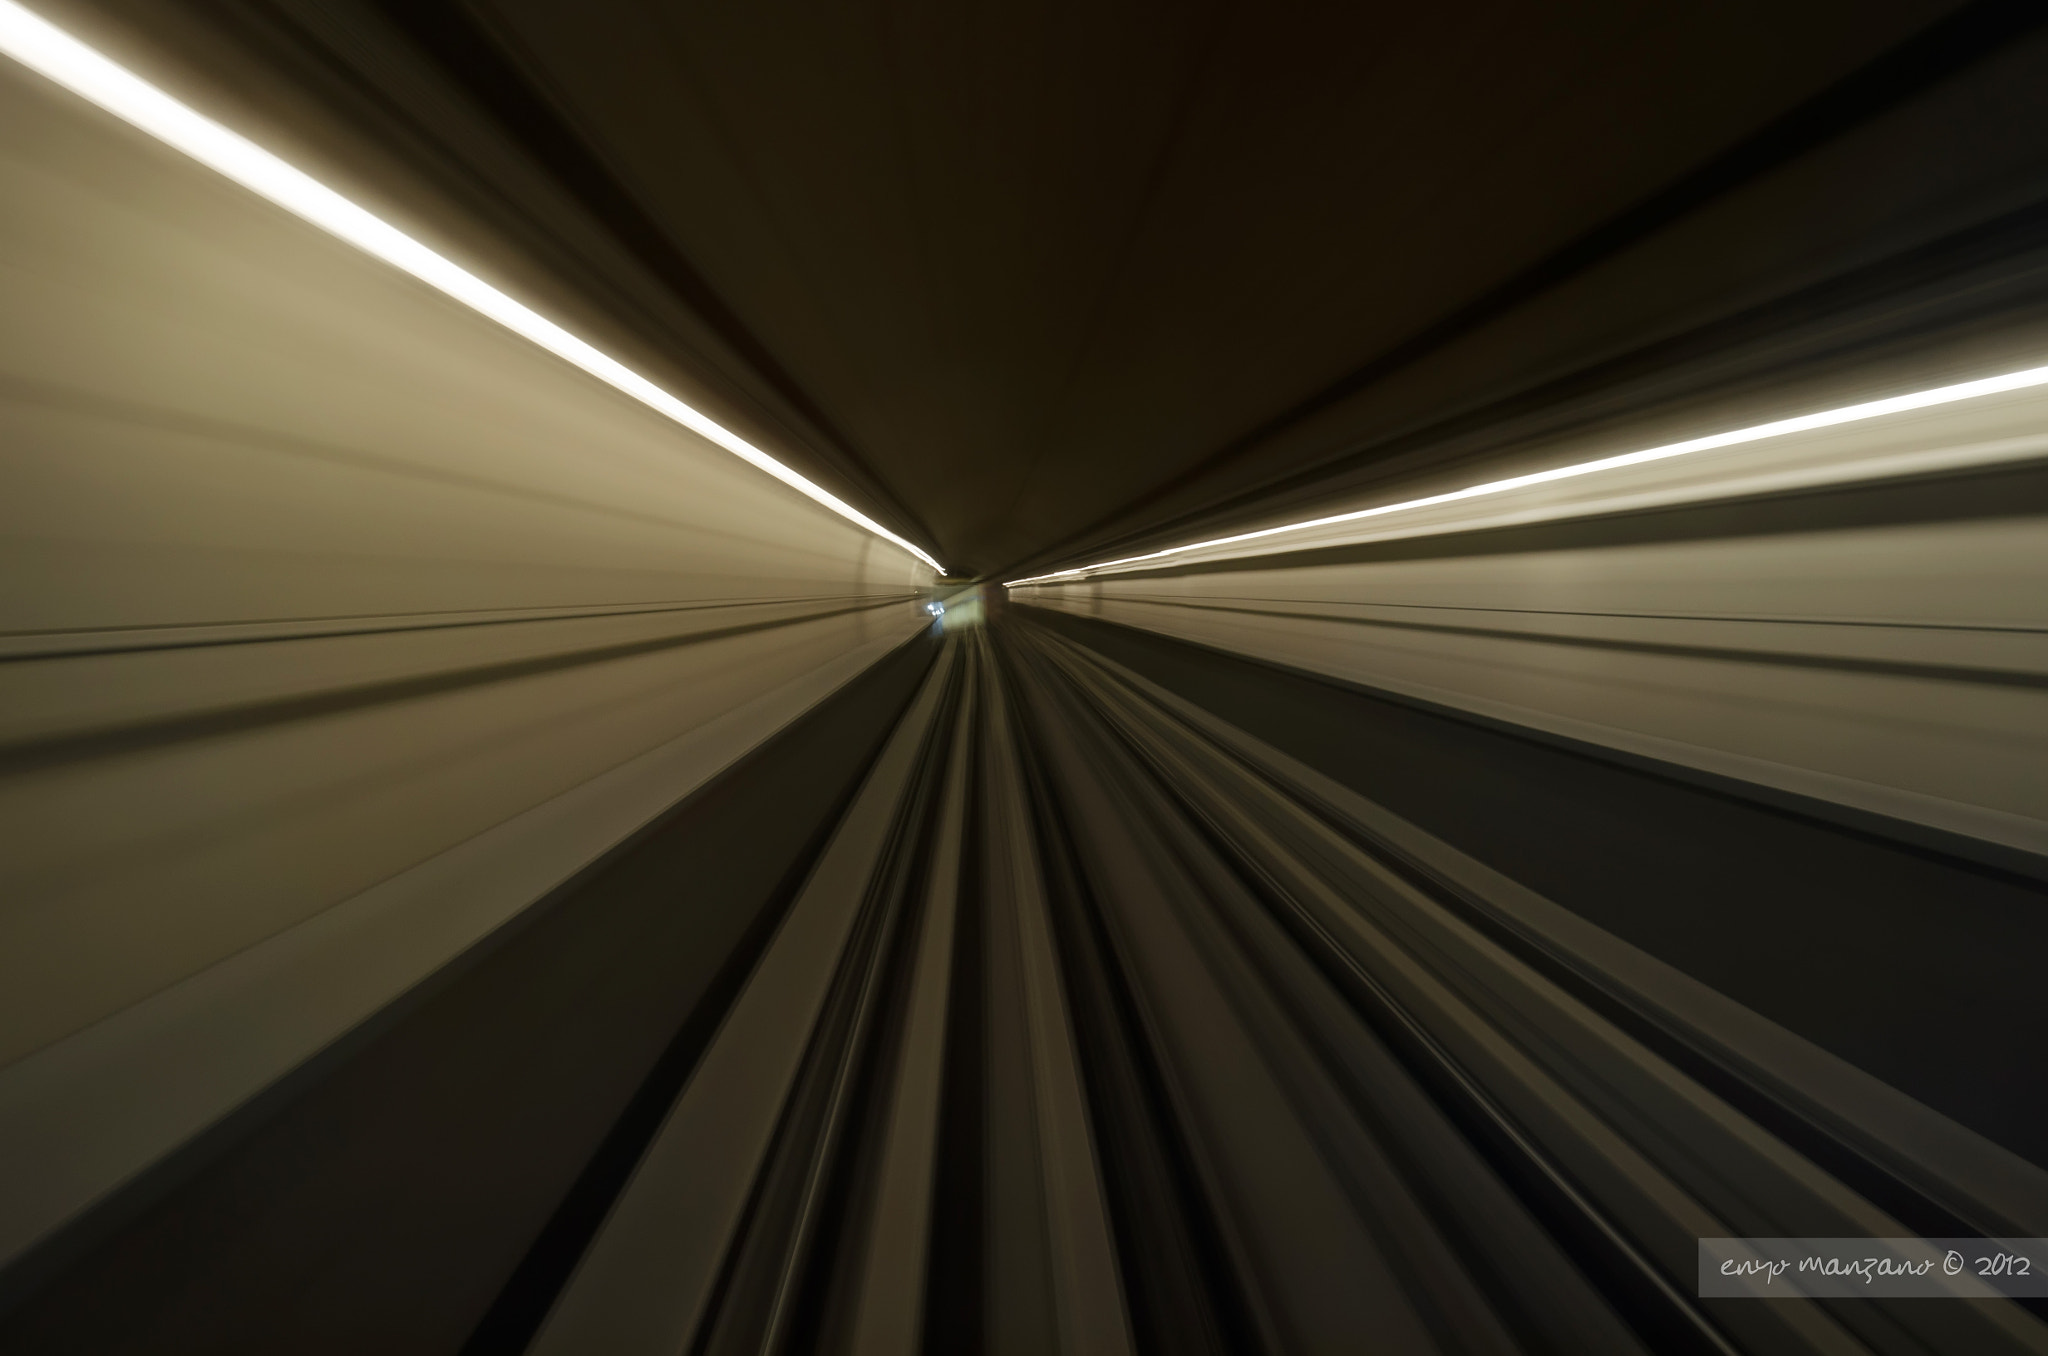 Photograph Time Space Warp by Ernie Manzano on 500px